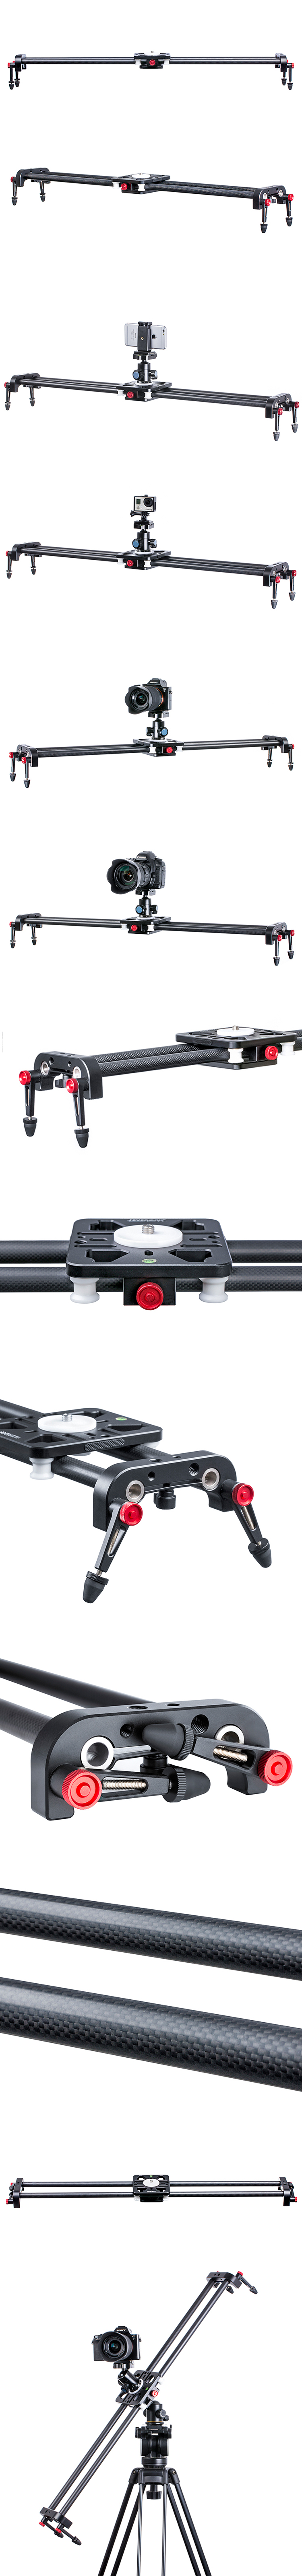 Light-weight Carbon Fiber Slider SK-CFS80